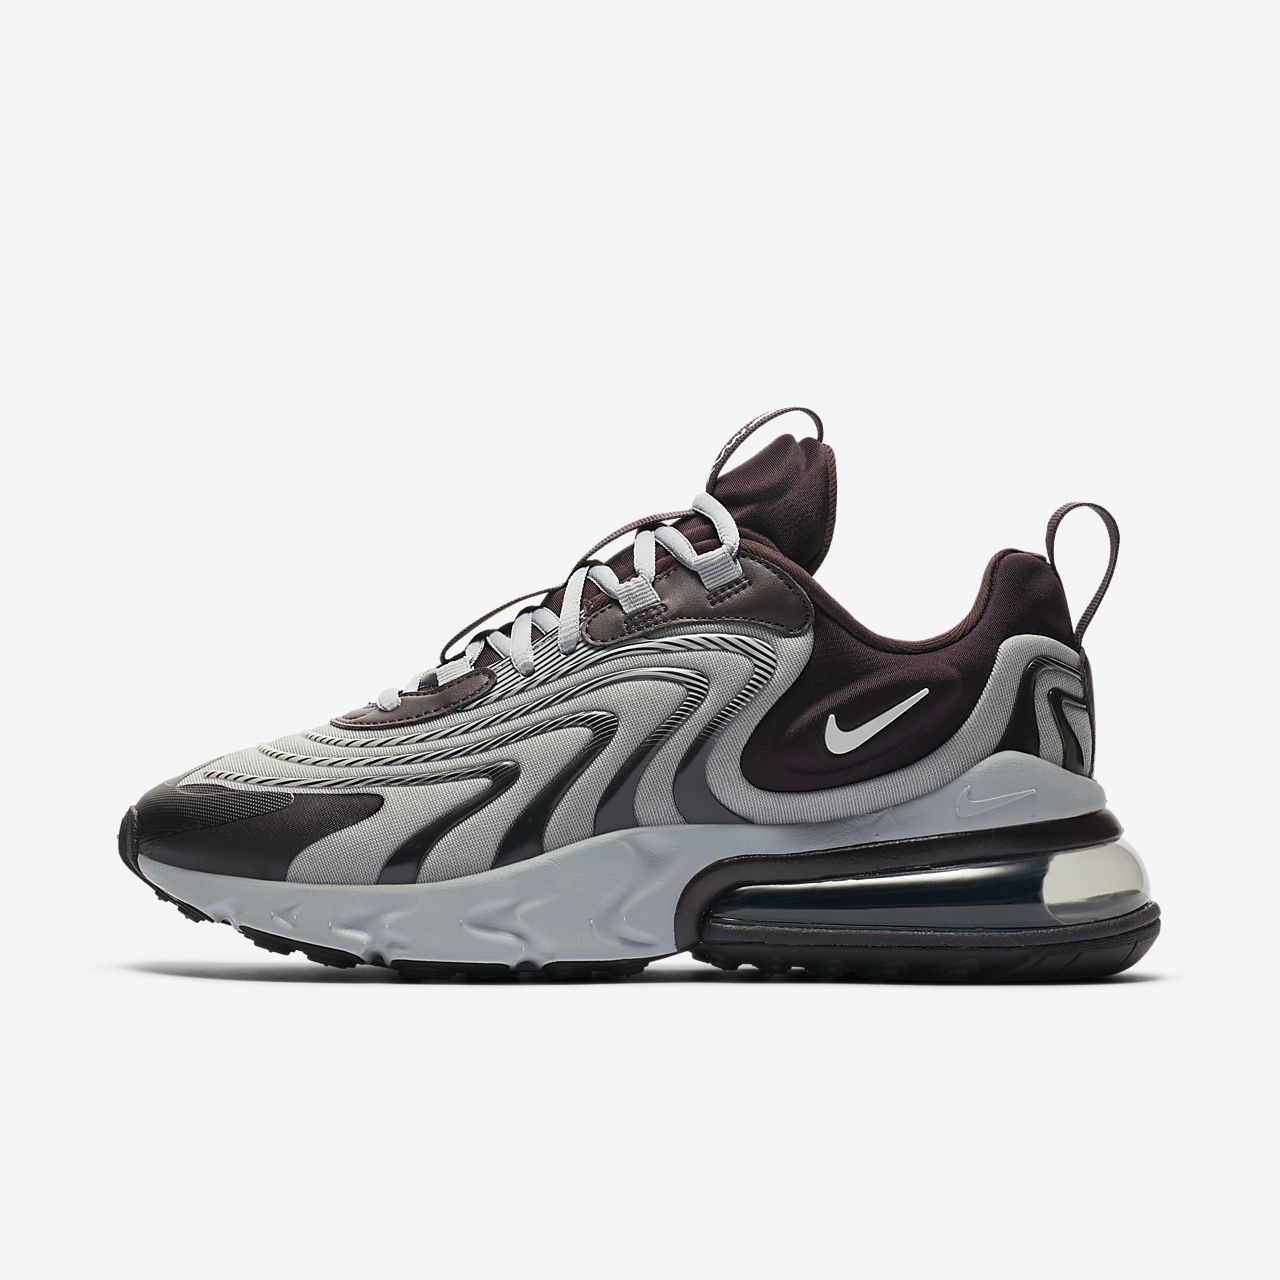 On Sale: Nike Air Max 270 React ENG